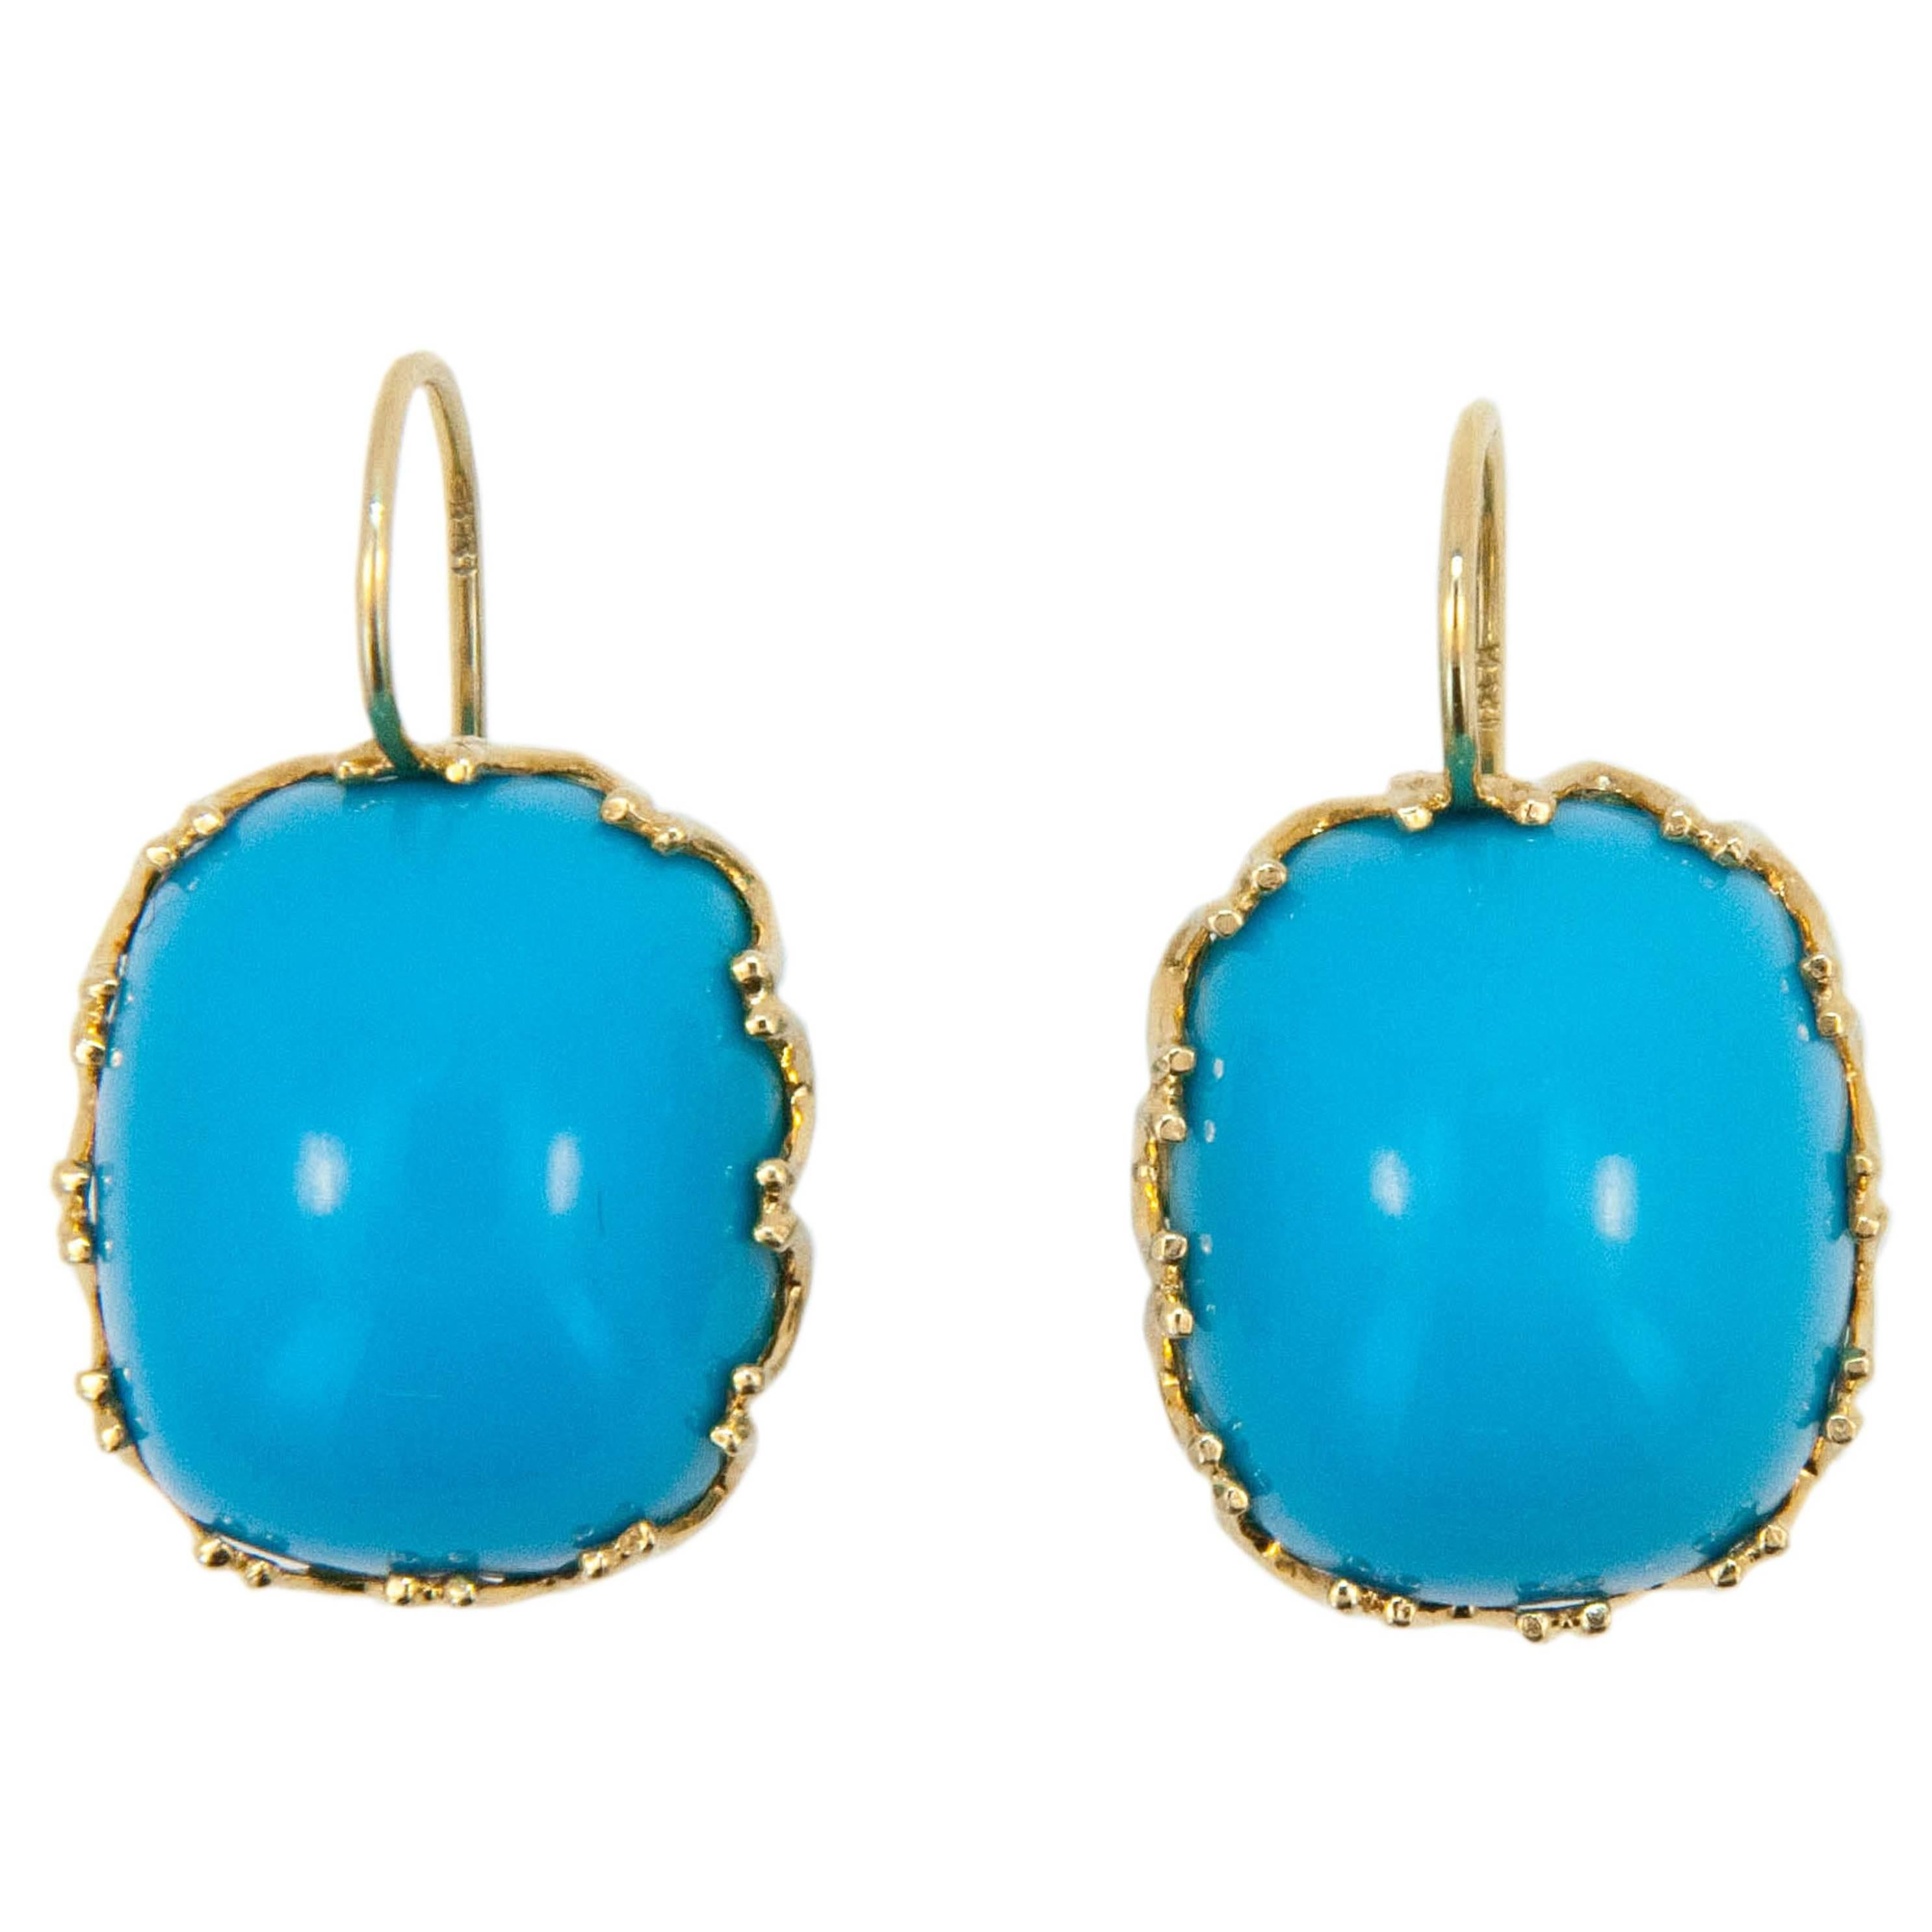 Laura Munder Turquoise Yellow Gold Earrings